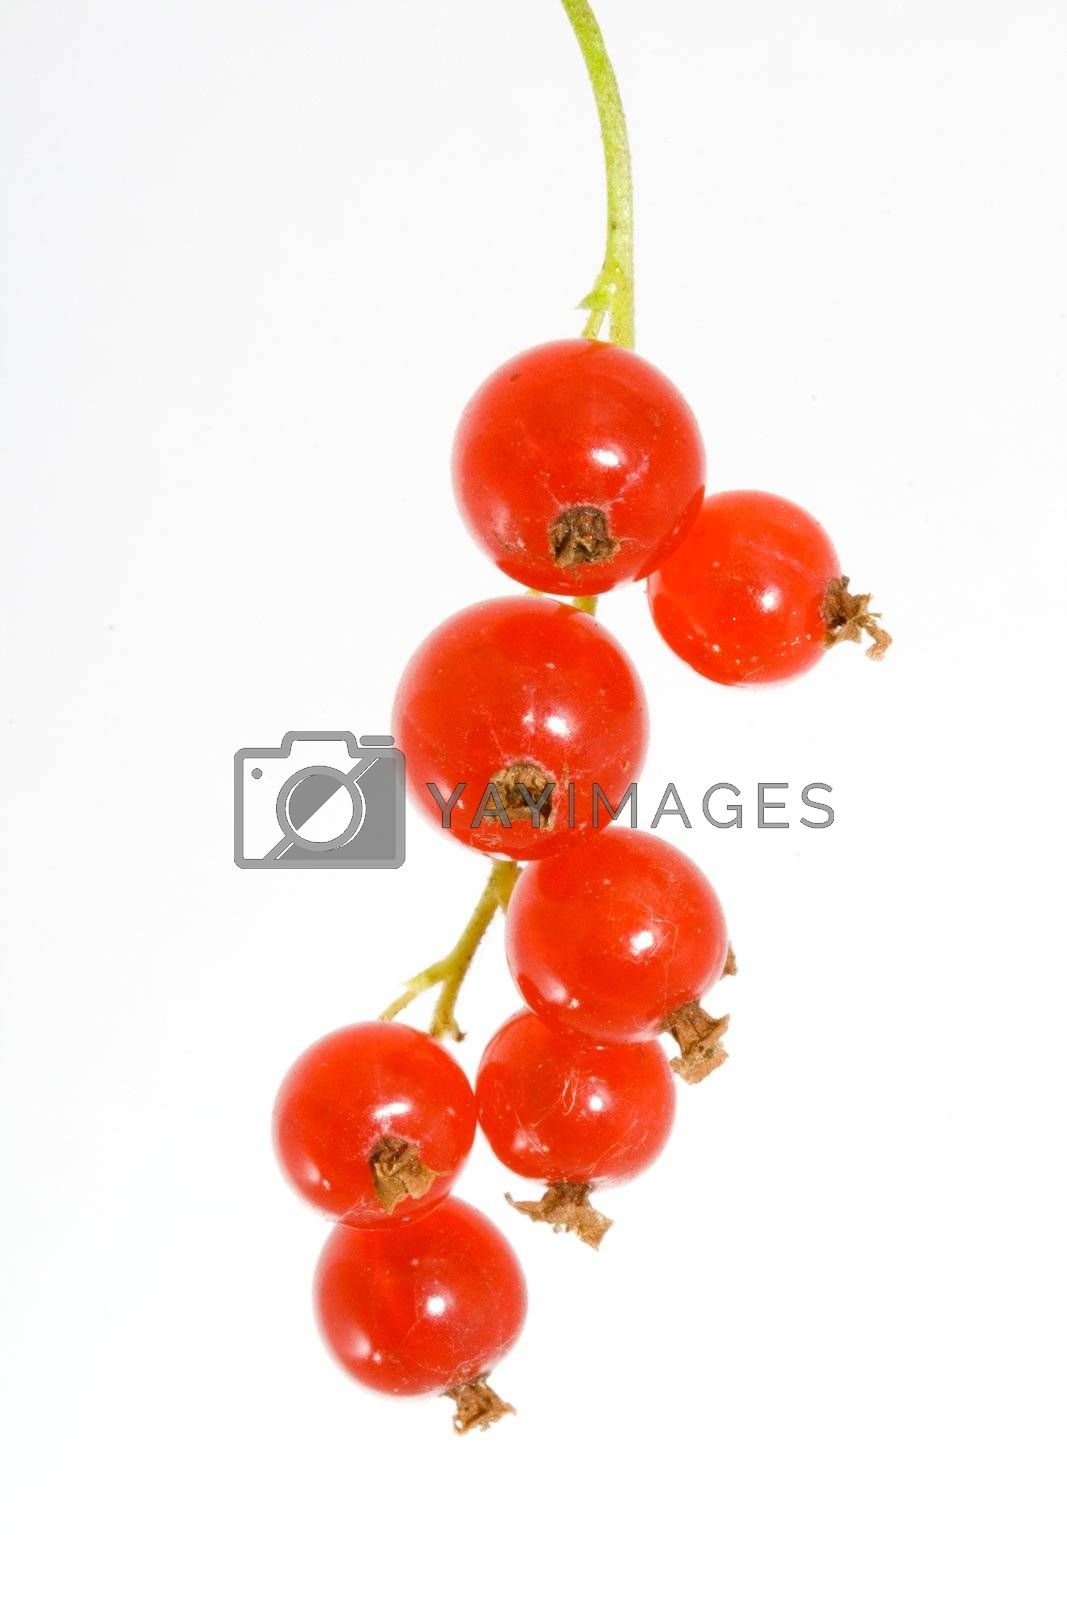 a bunch of berries of red currant - Ribes rubrum